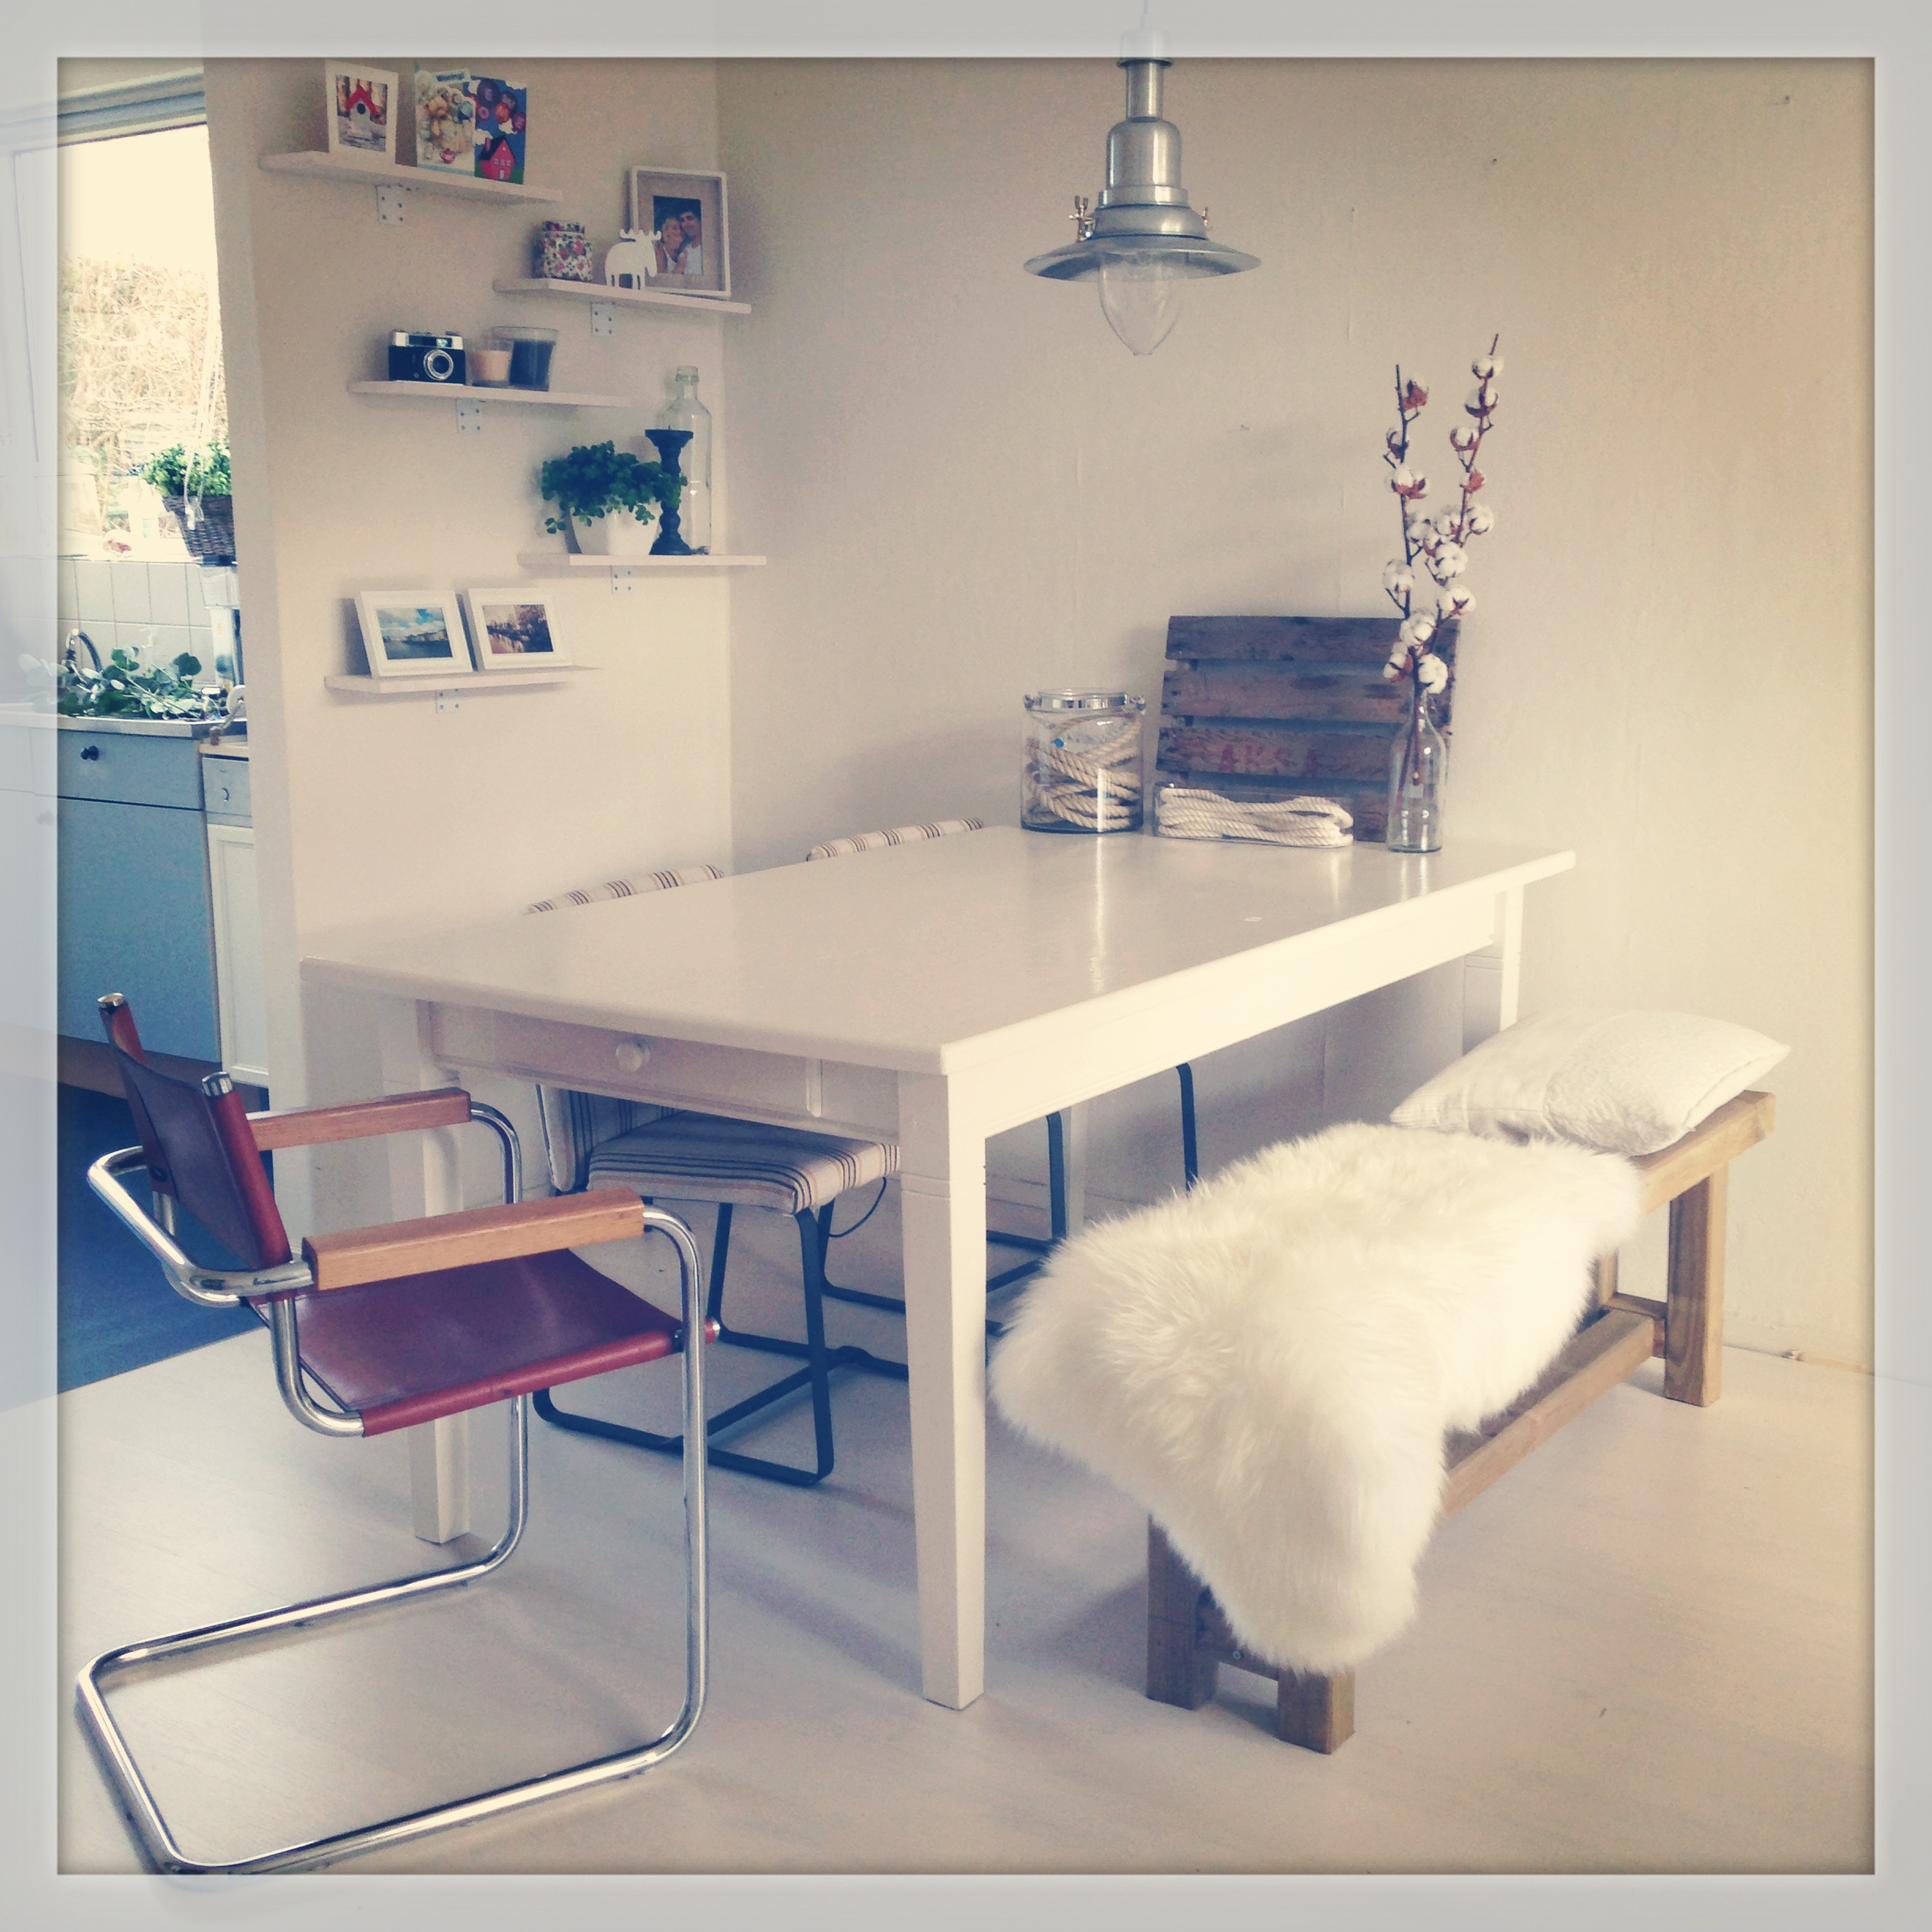 Do it yourself u00e9n stylingtip: bankje bij de eettafel - donebymyself